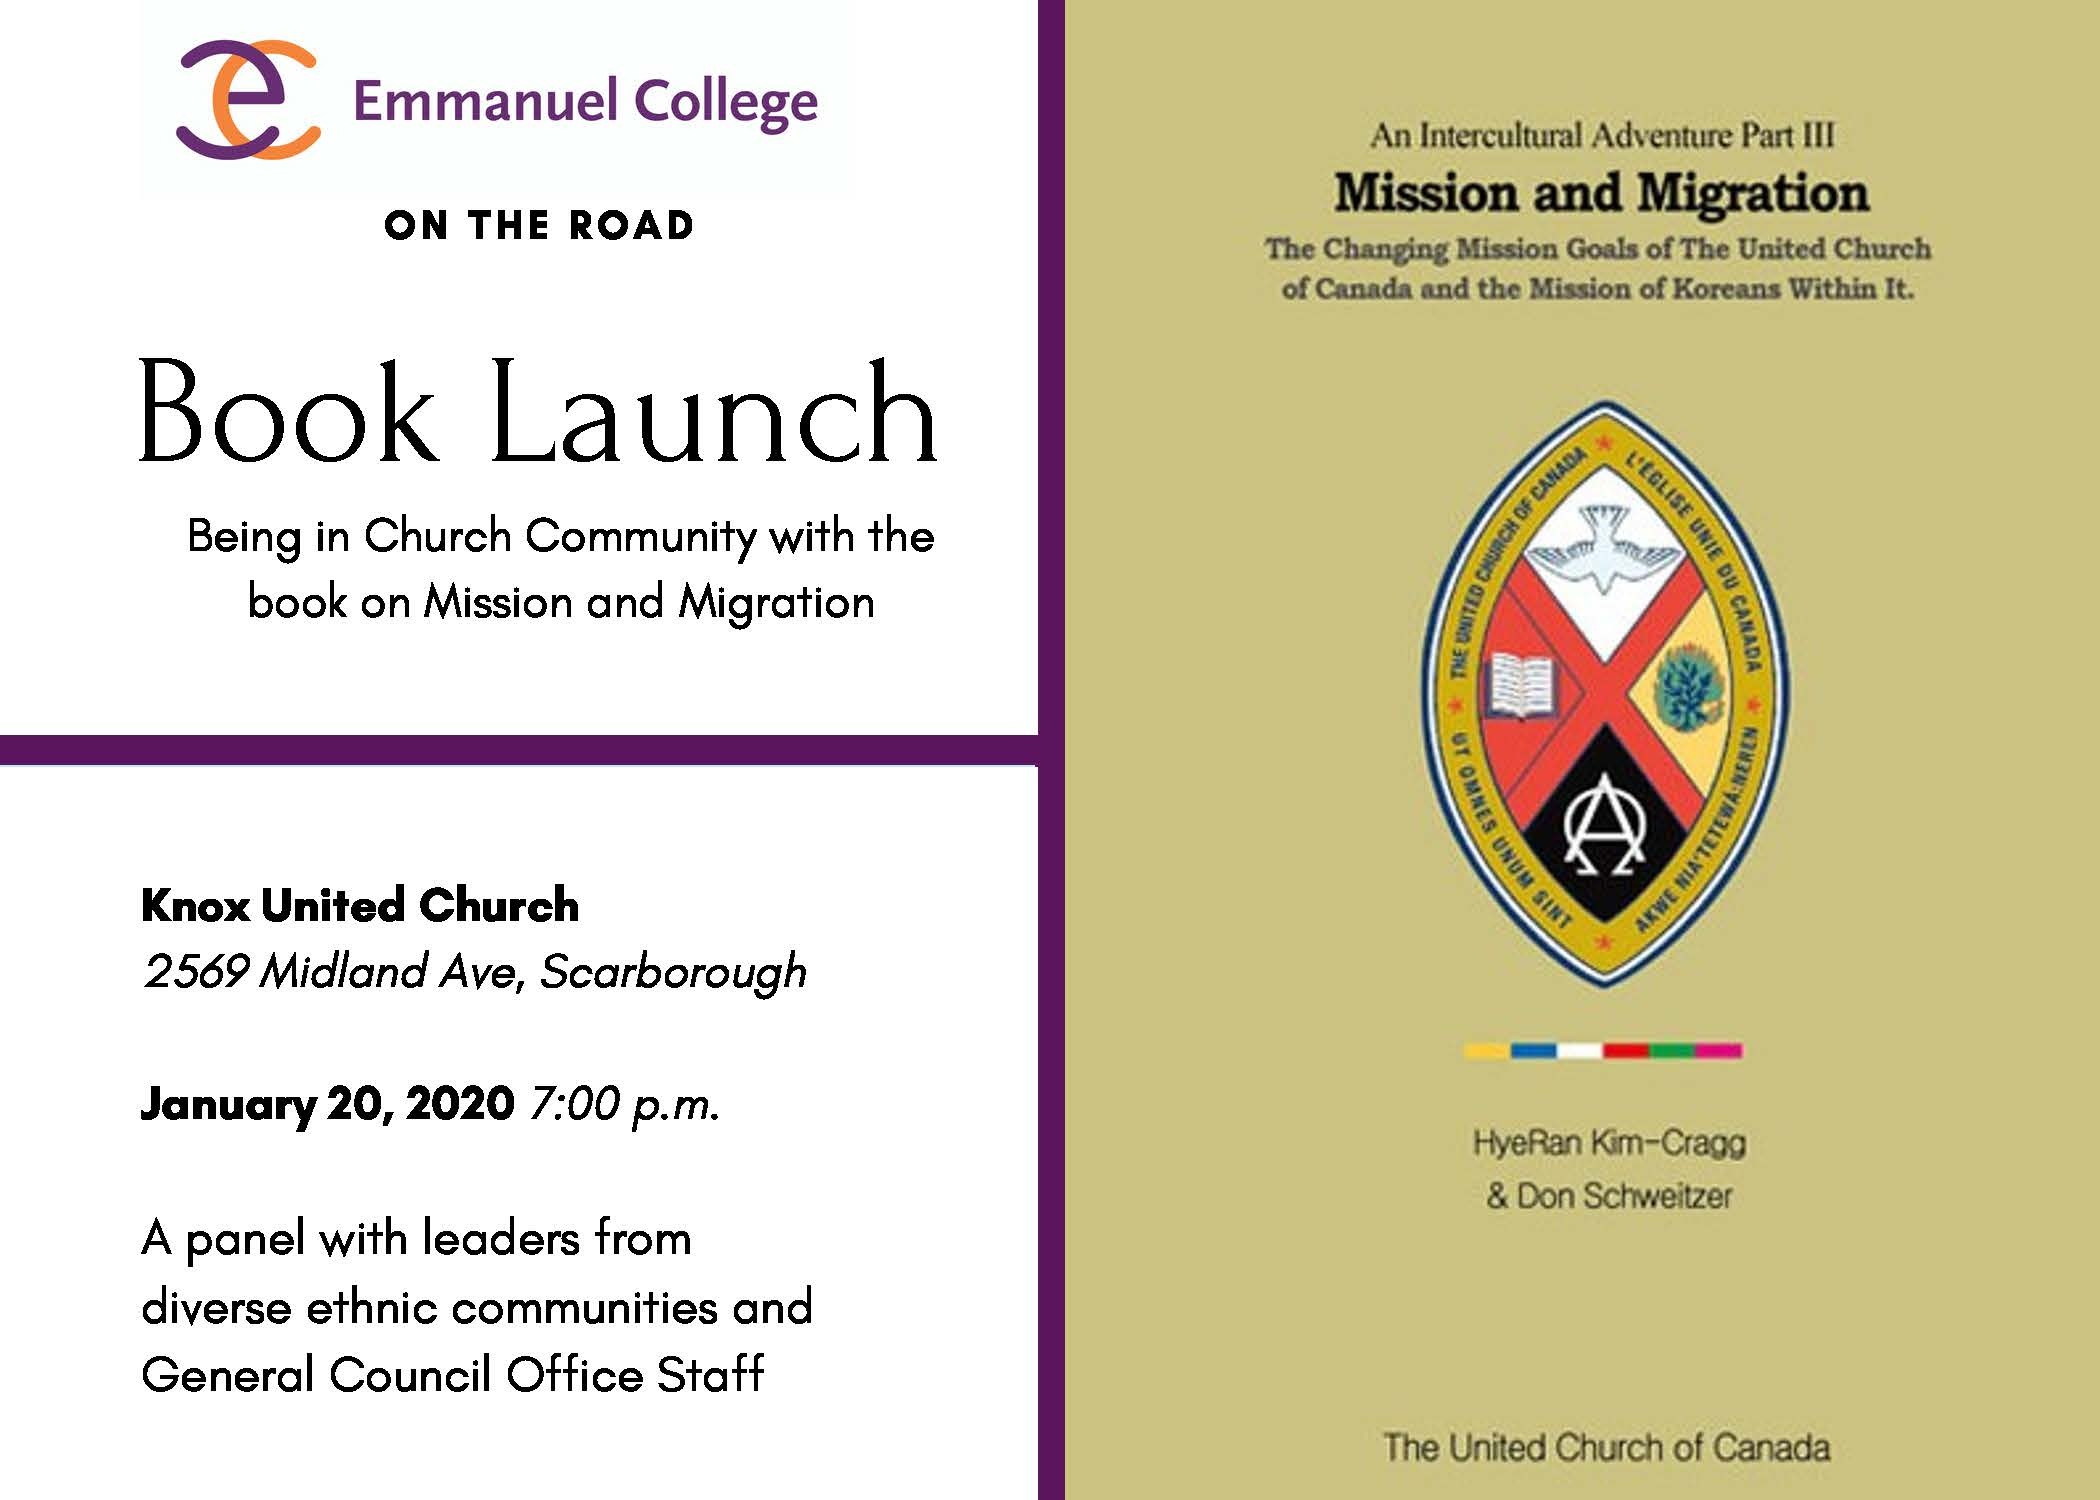 Book Launch - Being in Church Community: Mission and Migration